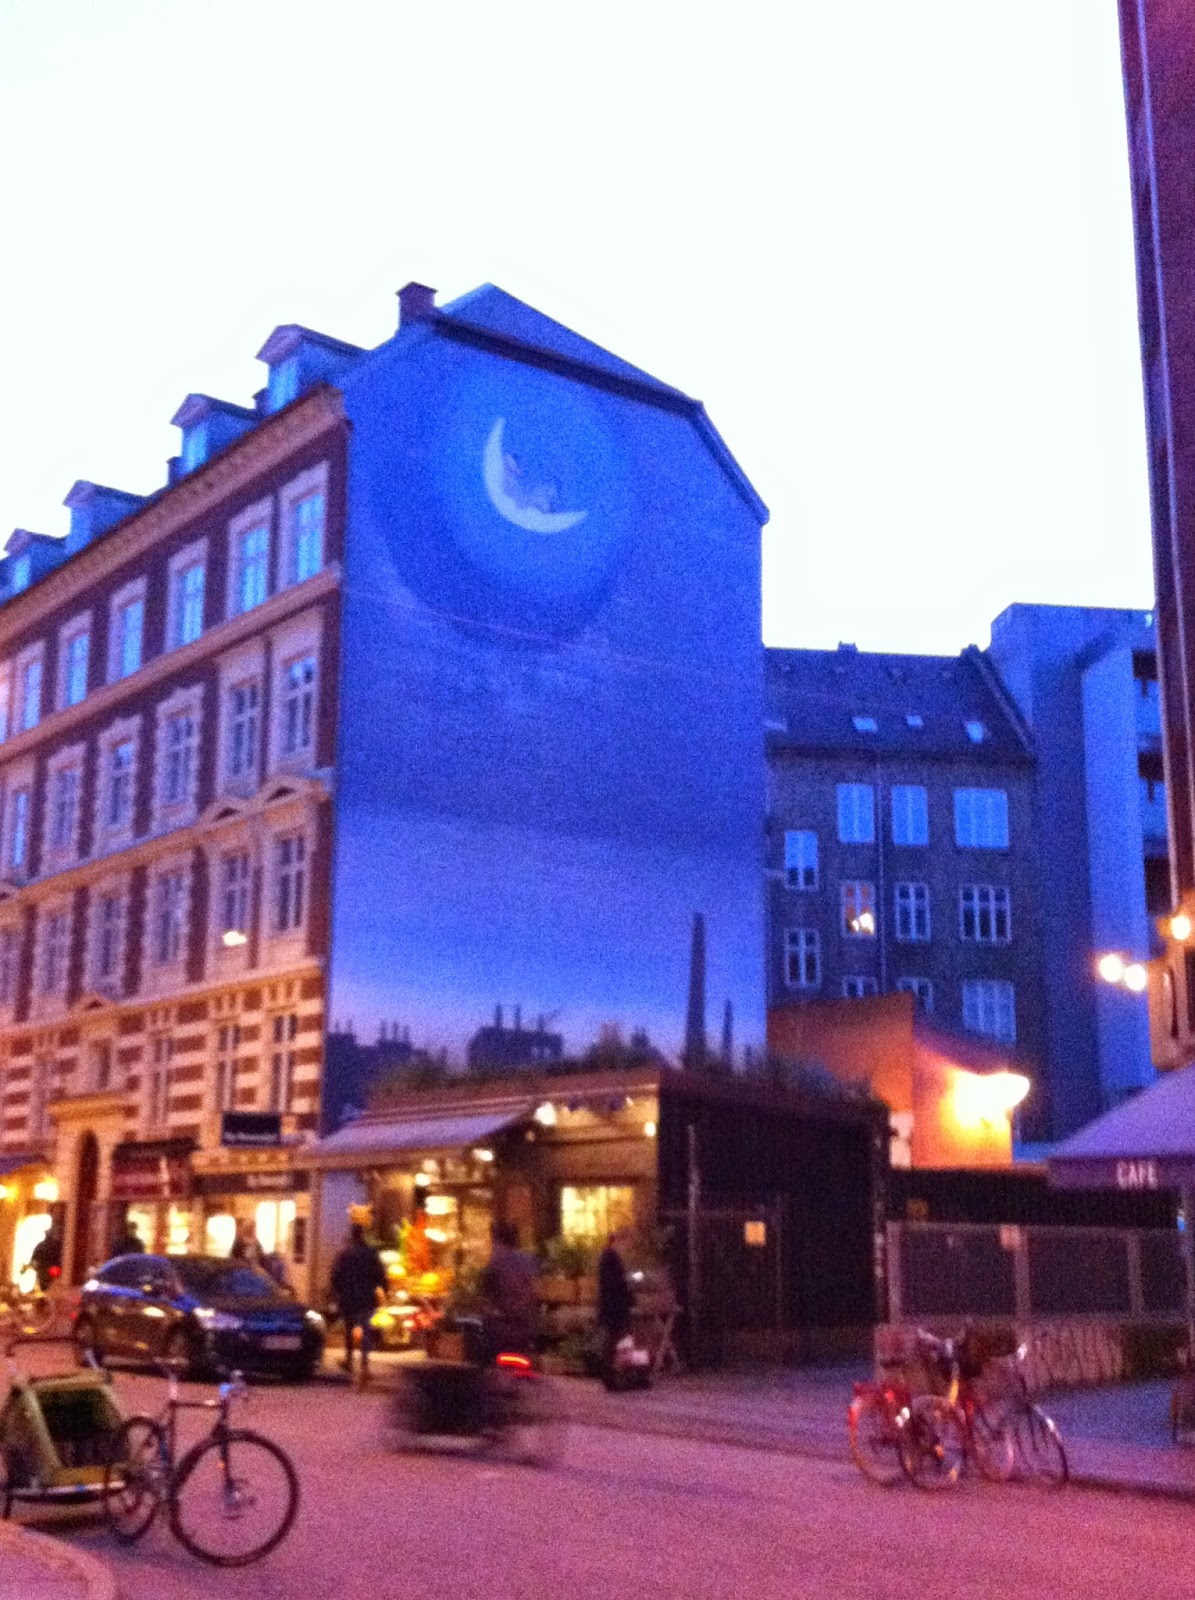 a moon and city painting on the side of a building in Copenhagen